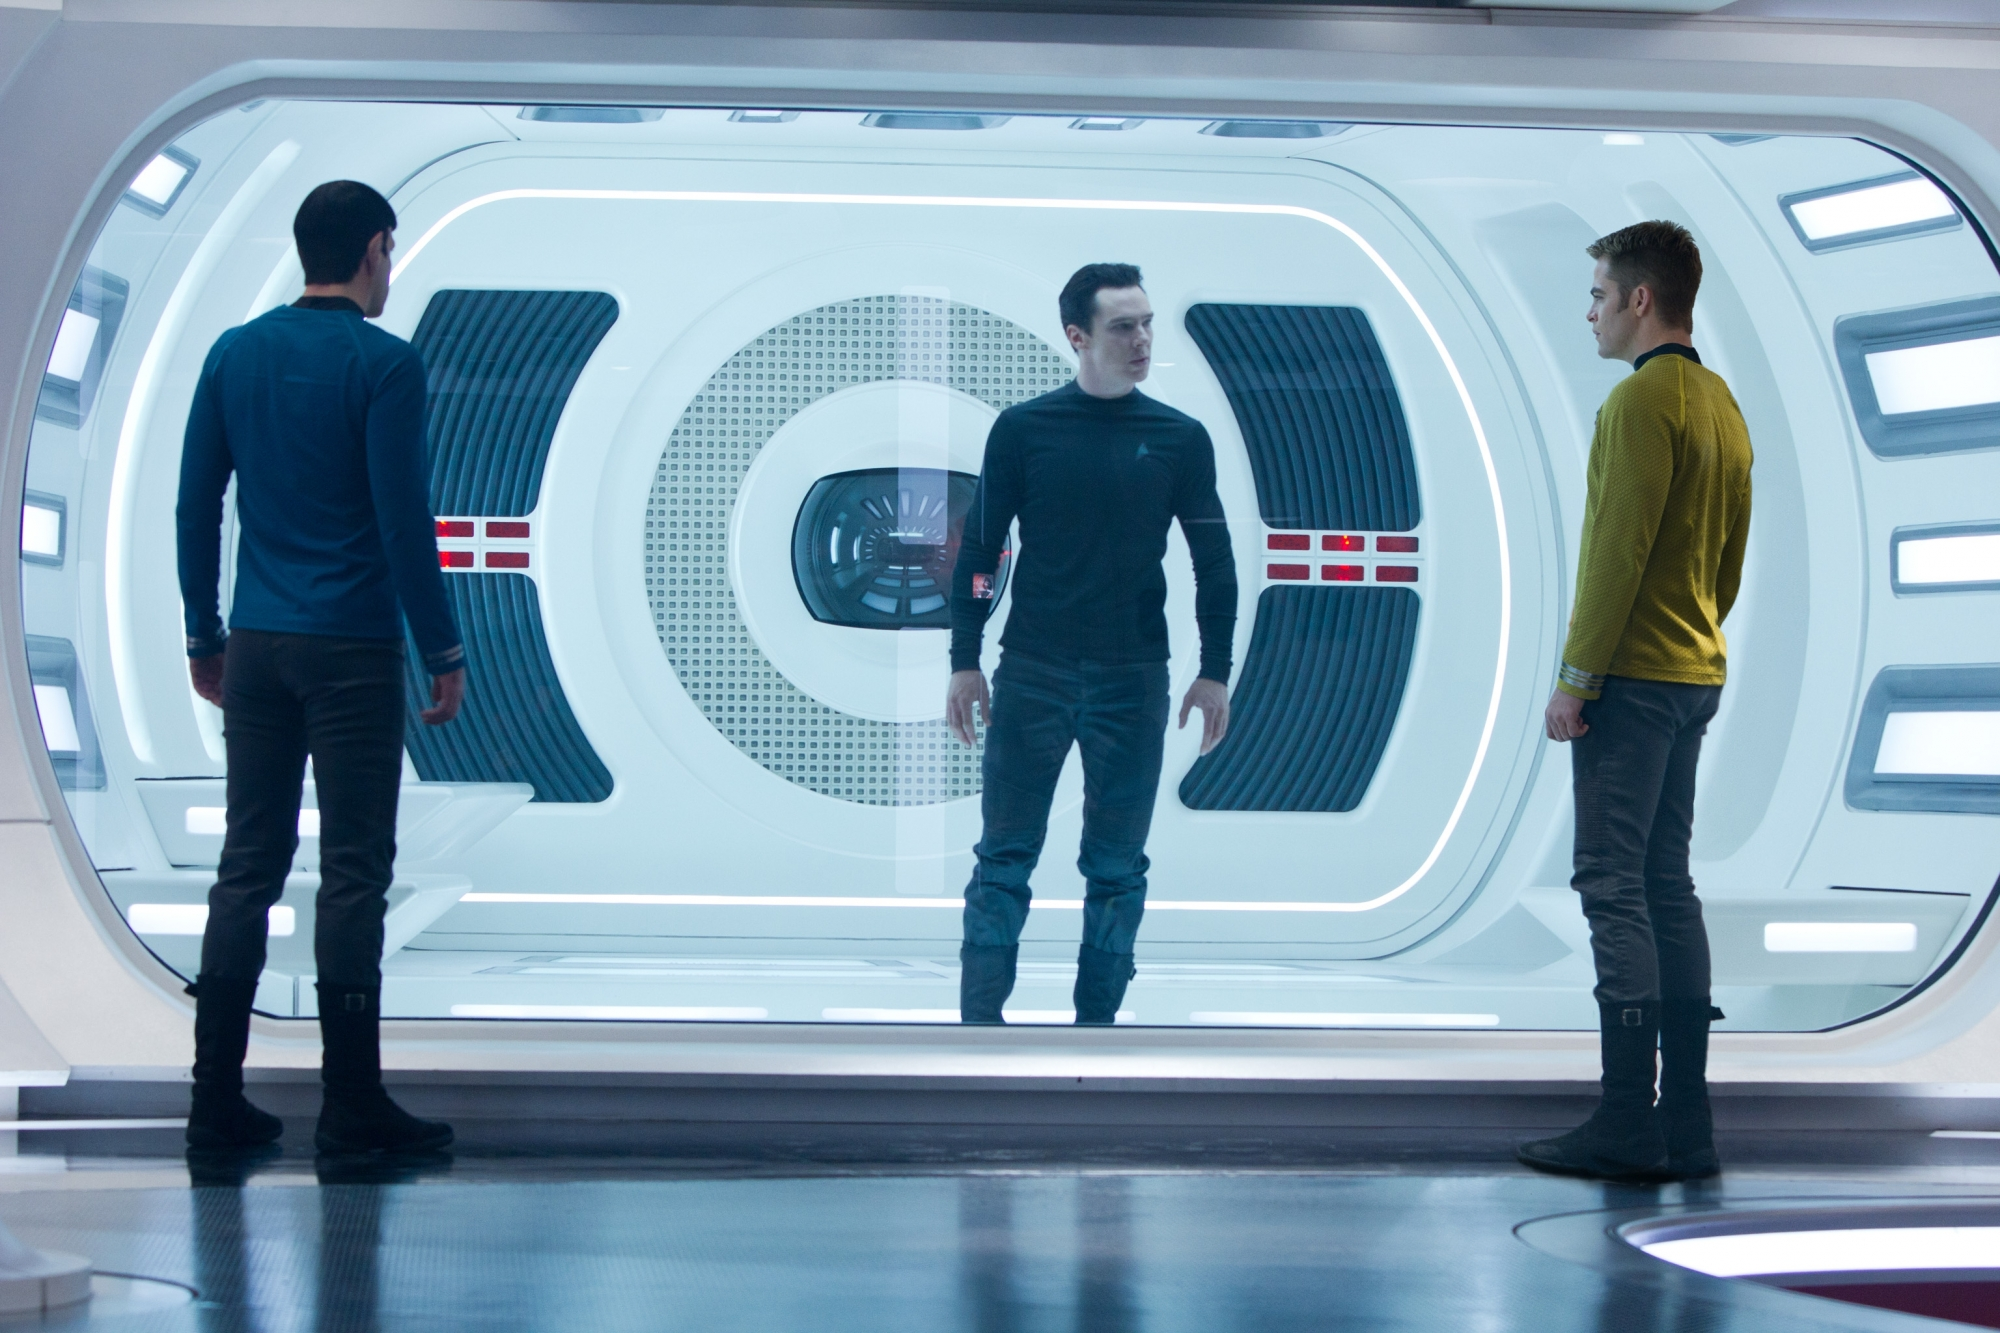 New Star Trek Into Darkness App Delivers Exclusive Content New Star Trek Into Darkness App Delivers Exclusive Content